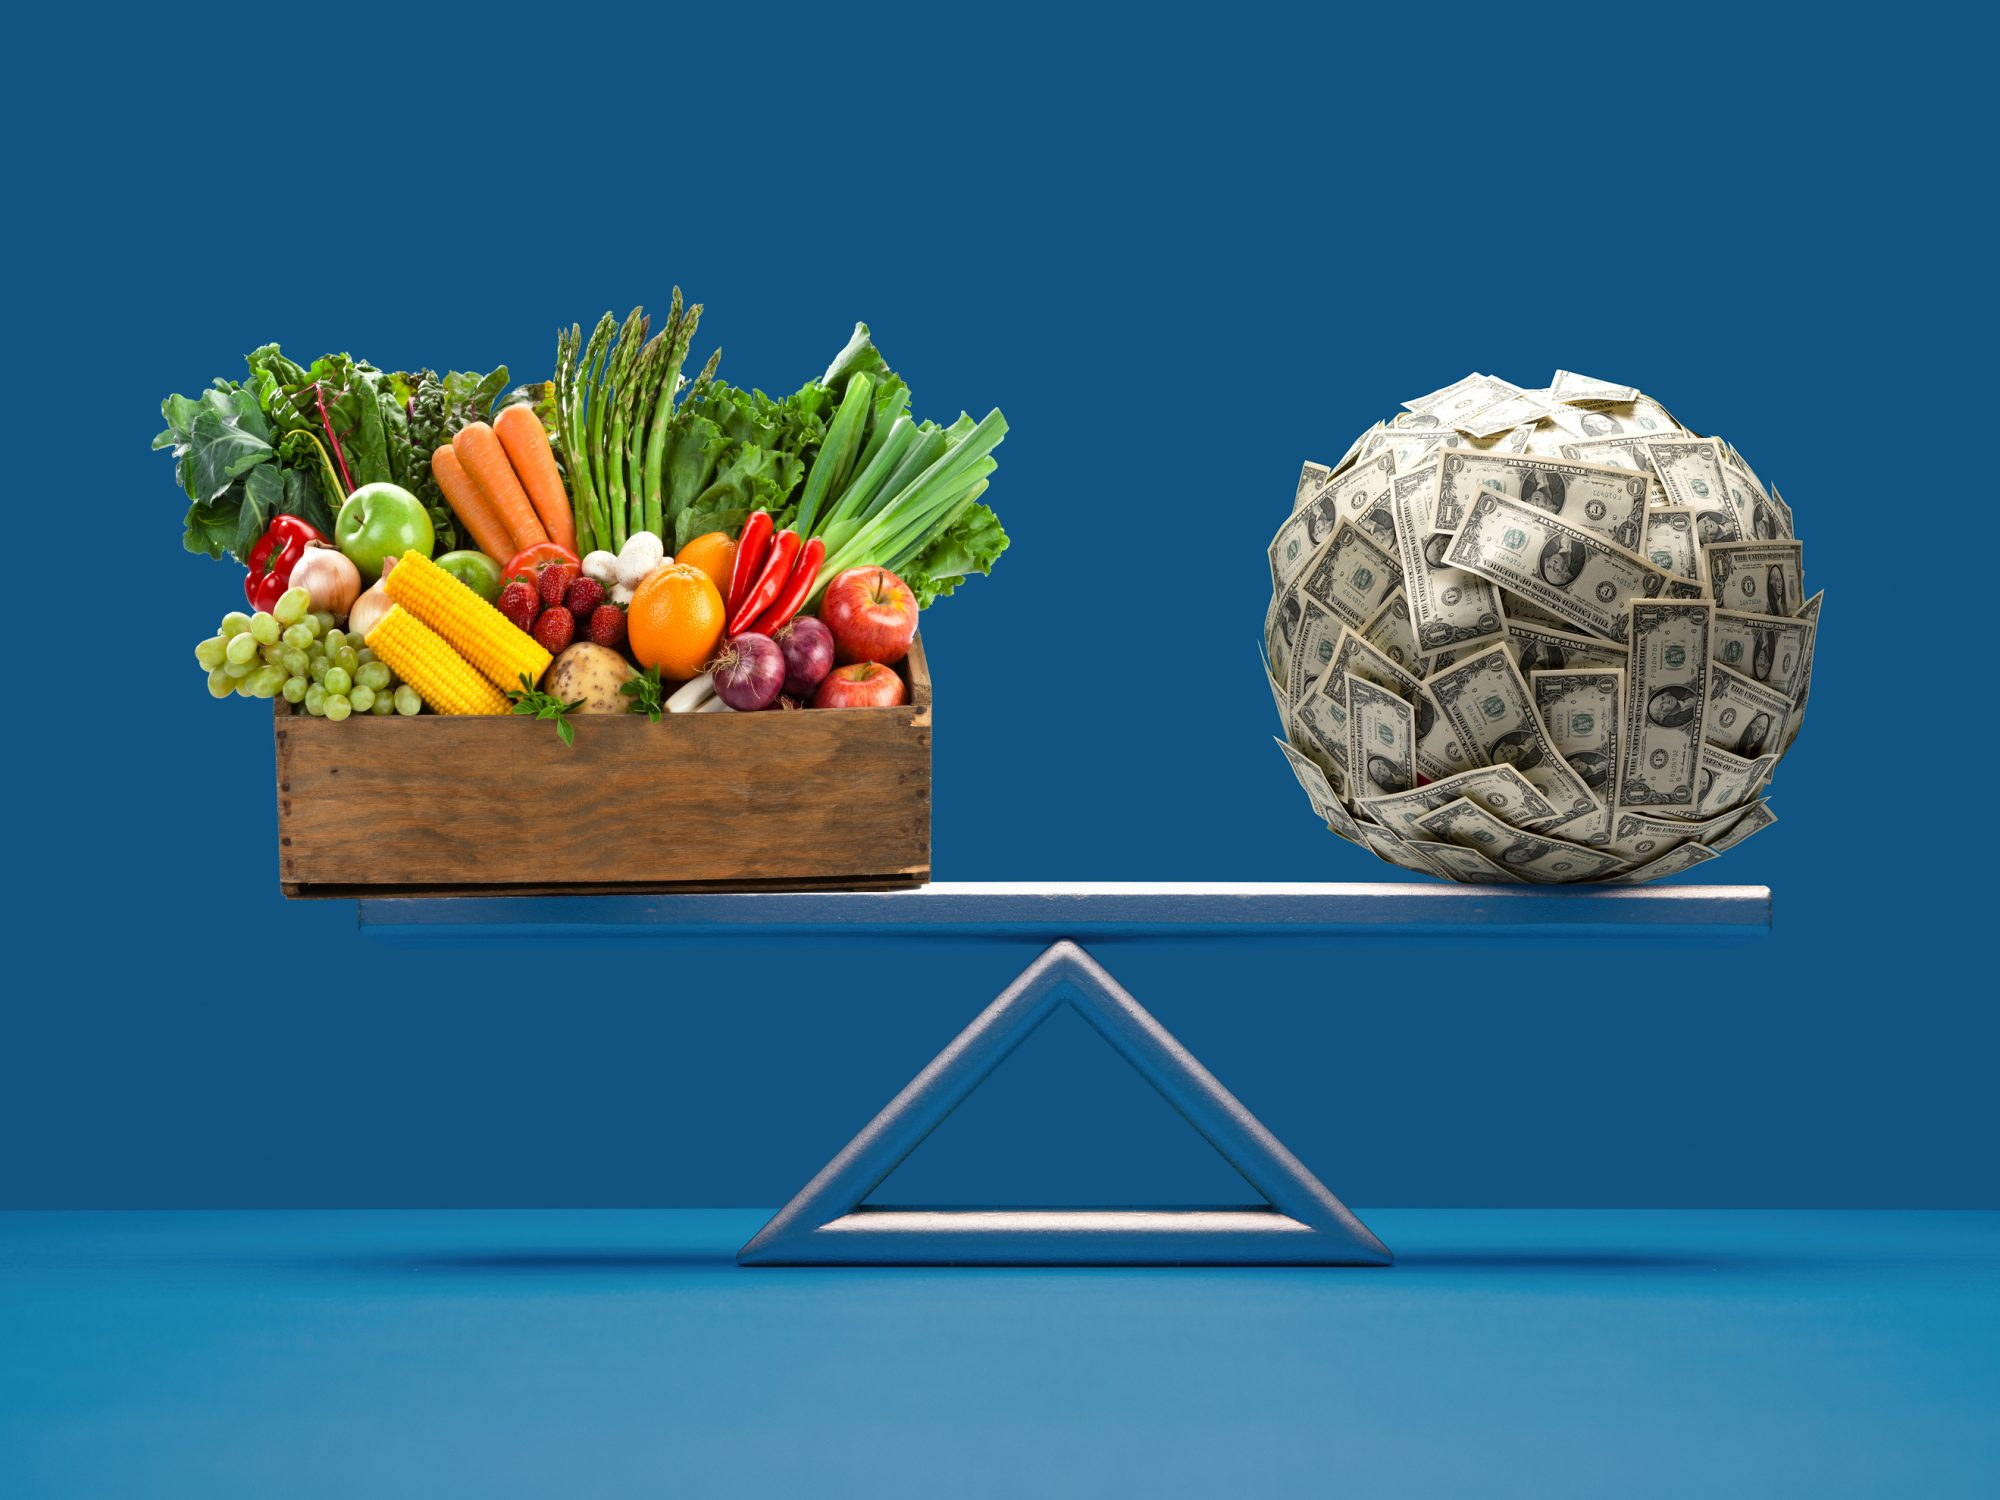 crate of vegetables and ball of US paper currency equally balanced on seesaw weight scale on blue surface and background